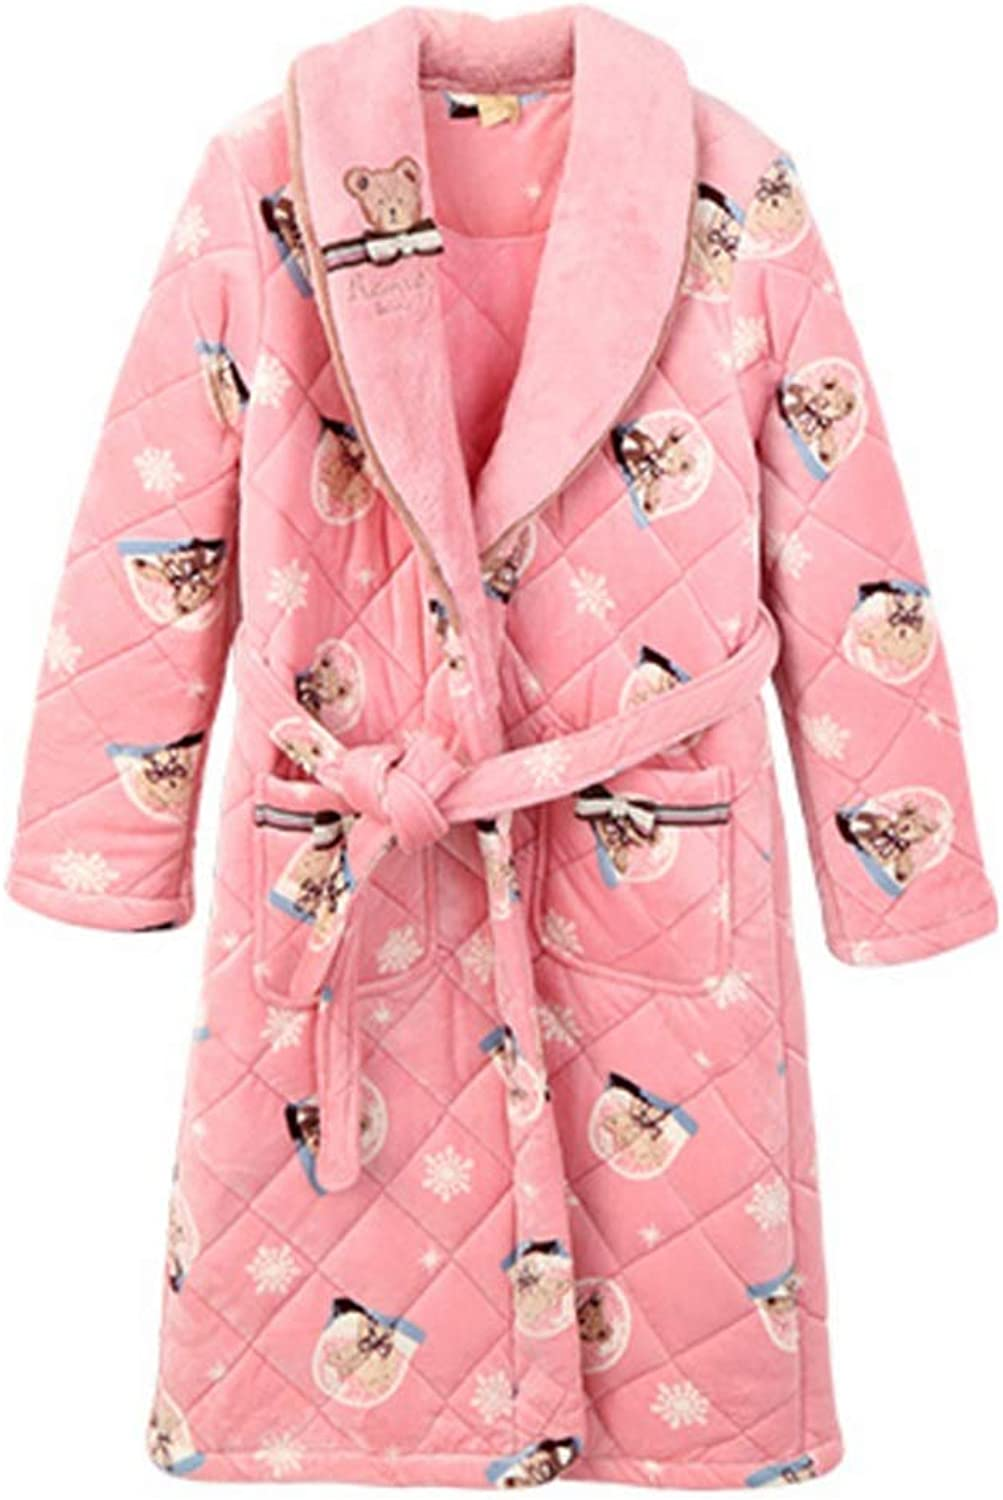 NAN Liang Ladies' Luxury Soft Warm Dressing Gown Bathrobe with Hood Pink Sweet Home Dress (Size   M)